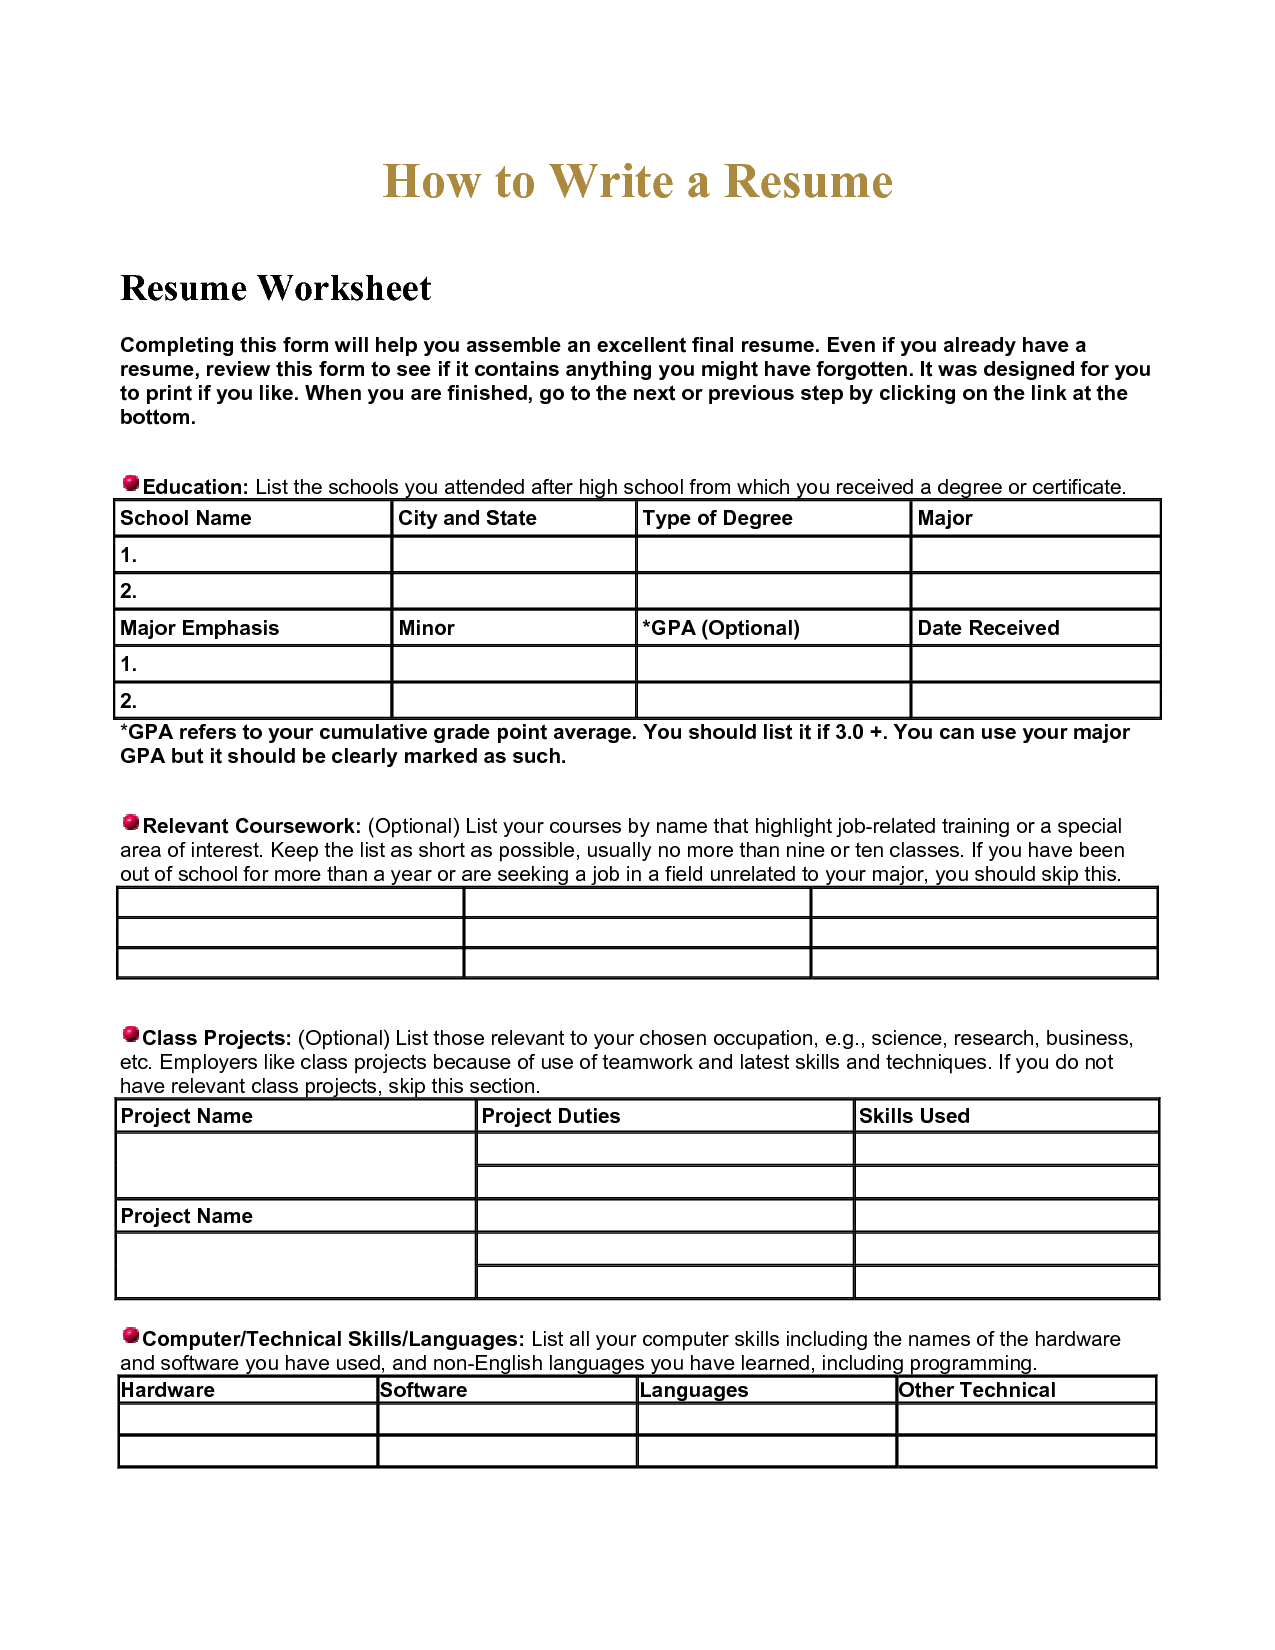 Computer Worksheet For Class 1 | Printable Worksheets and Activities